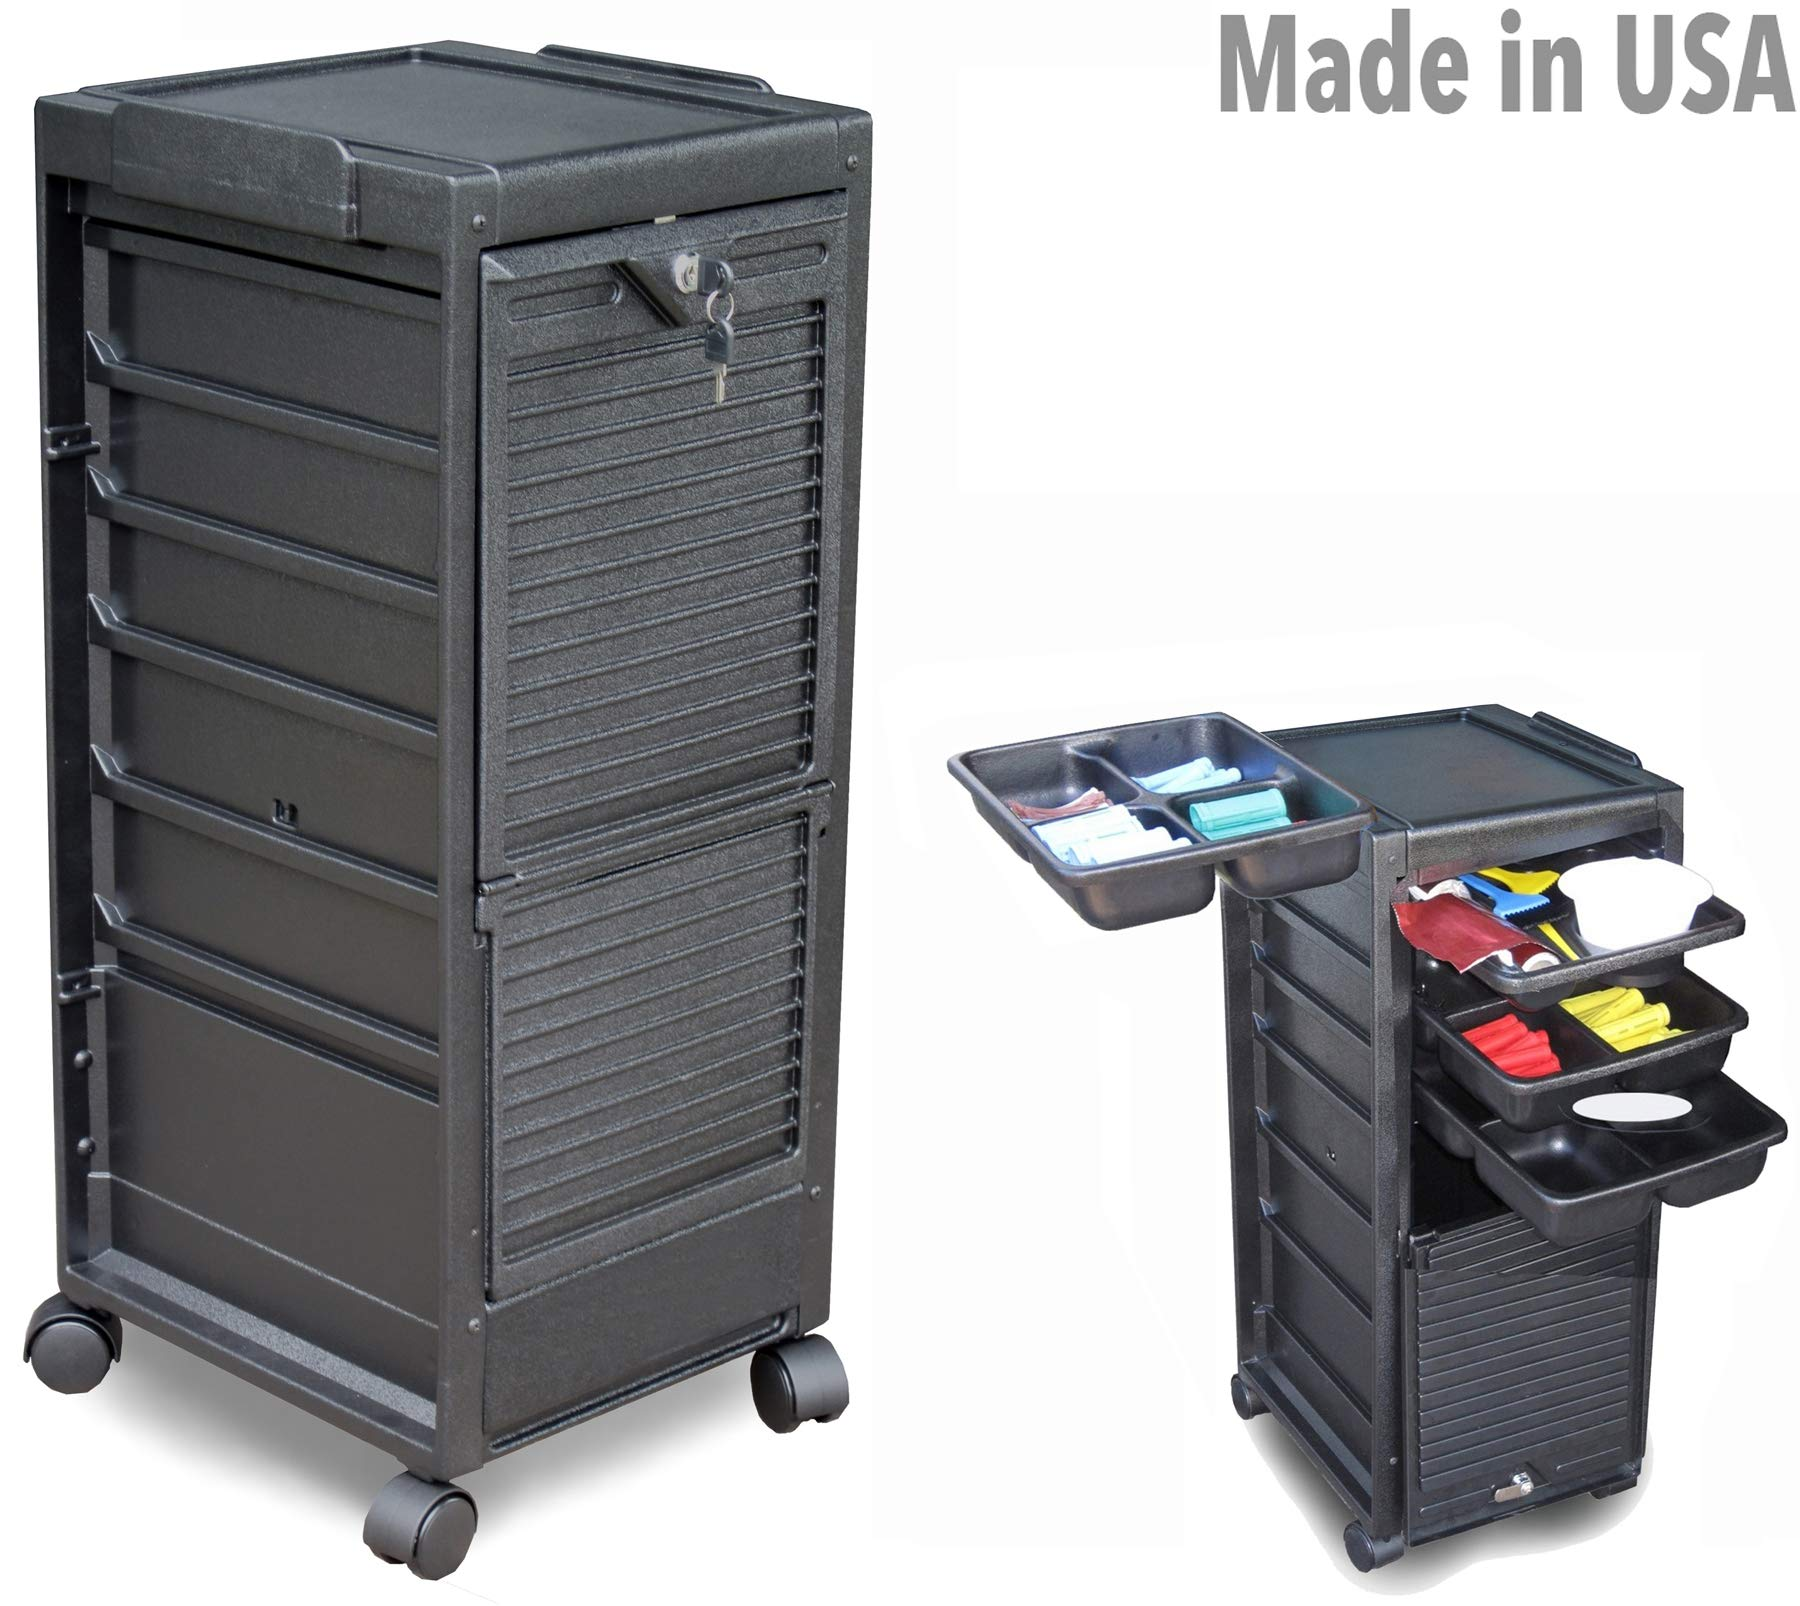 G3-M Medical Dental Physician Roll-About Utility Cart Storage Trolley Lockable Made in USA